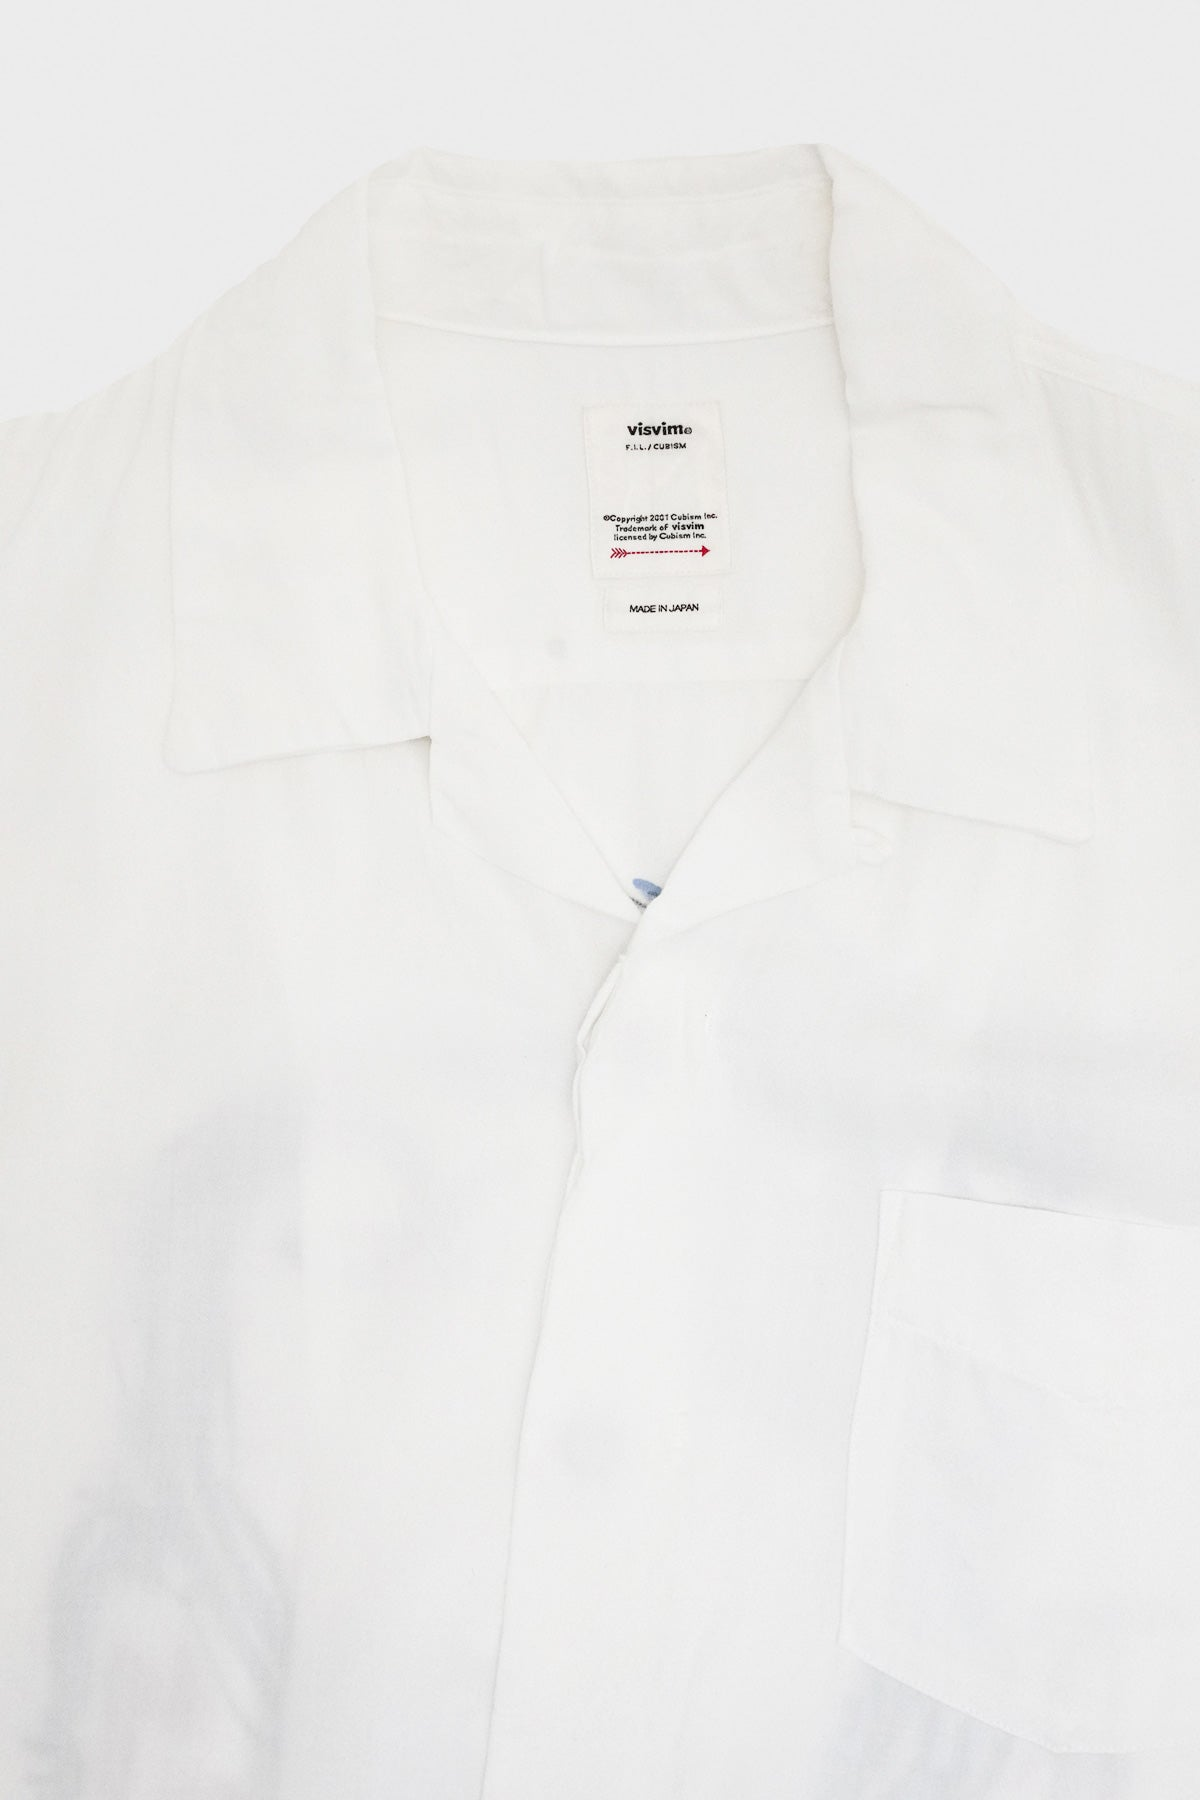 Visvim - Free Edge Shirt SS Rayon - White - Canoe Club